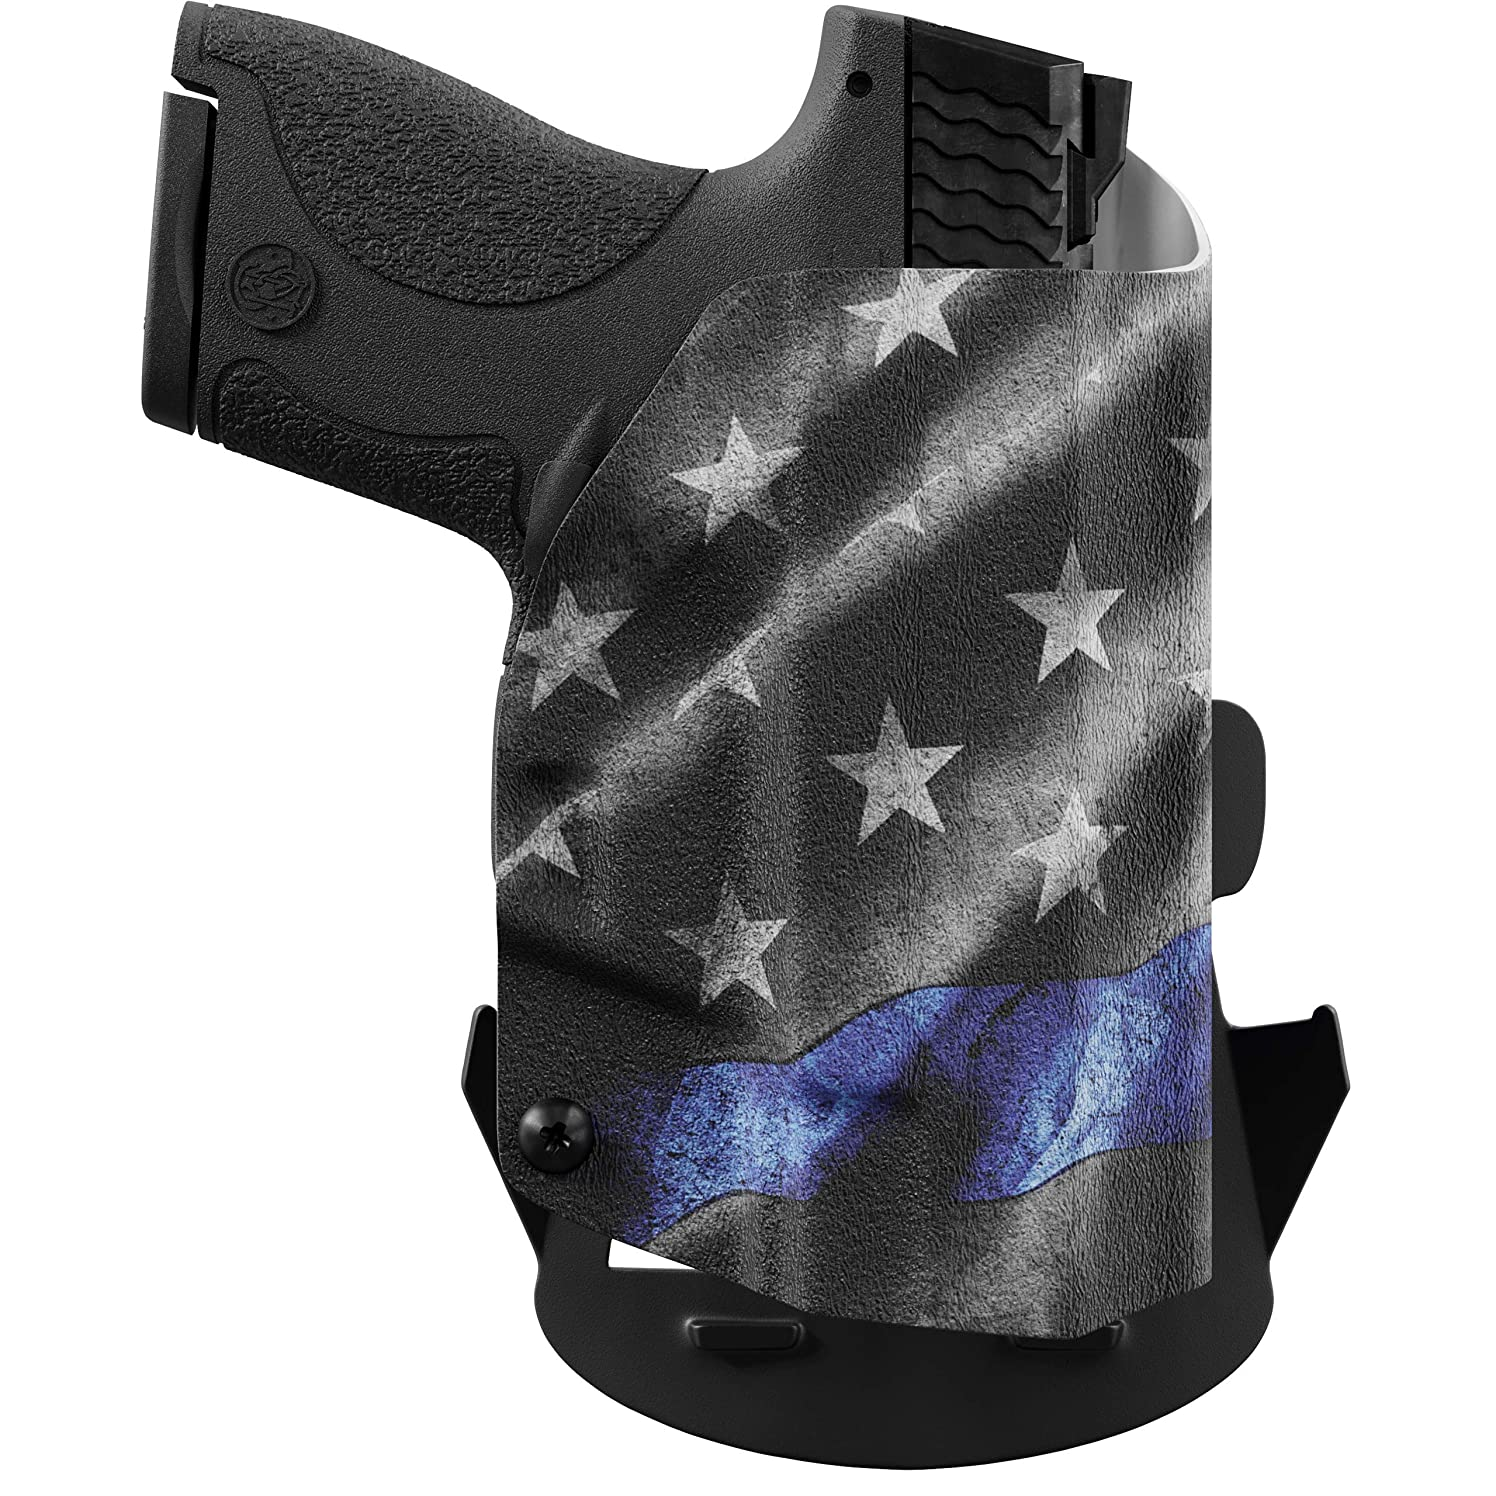 We The People - Thin Blue Line - Outside Waistband Concealed Carry - OWB Kydex Holster - Adjustable Ride/Cant/Retention